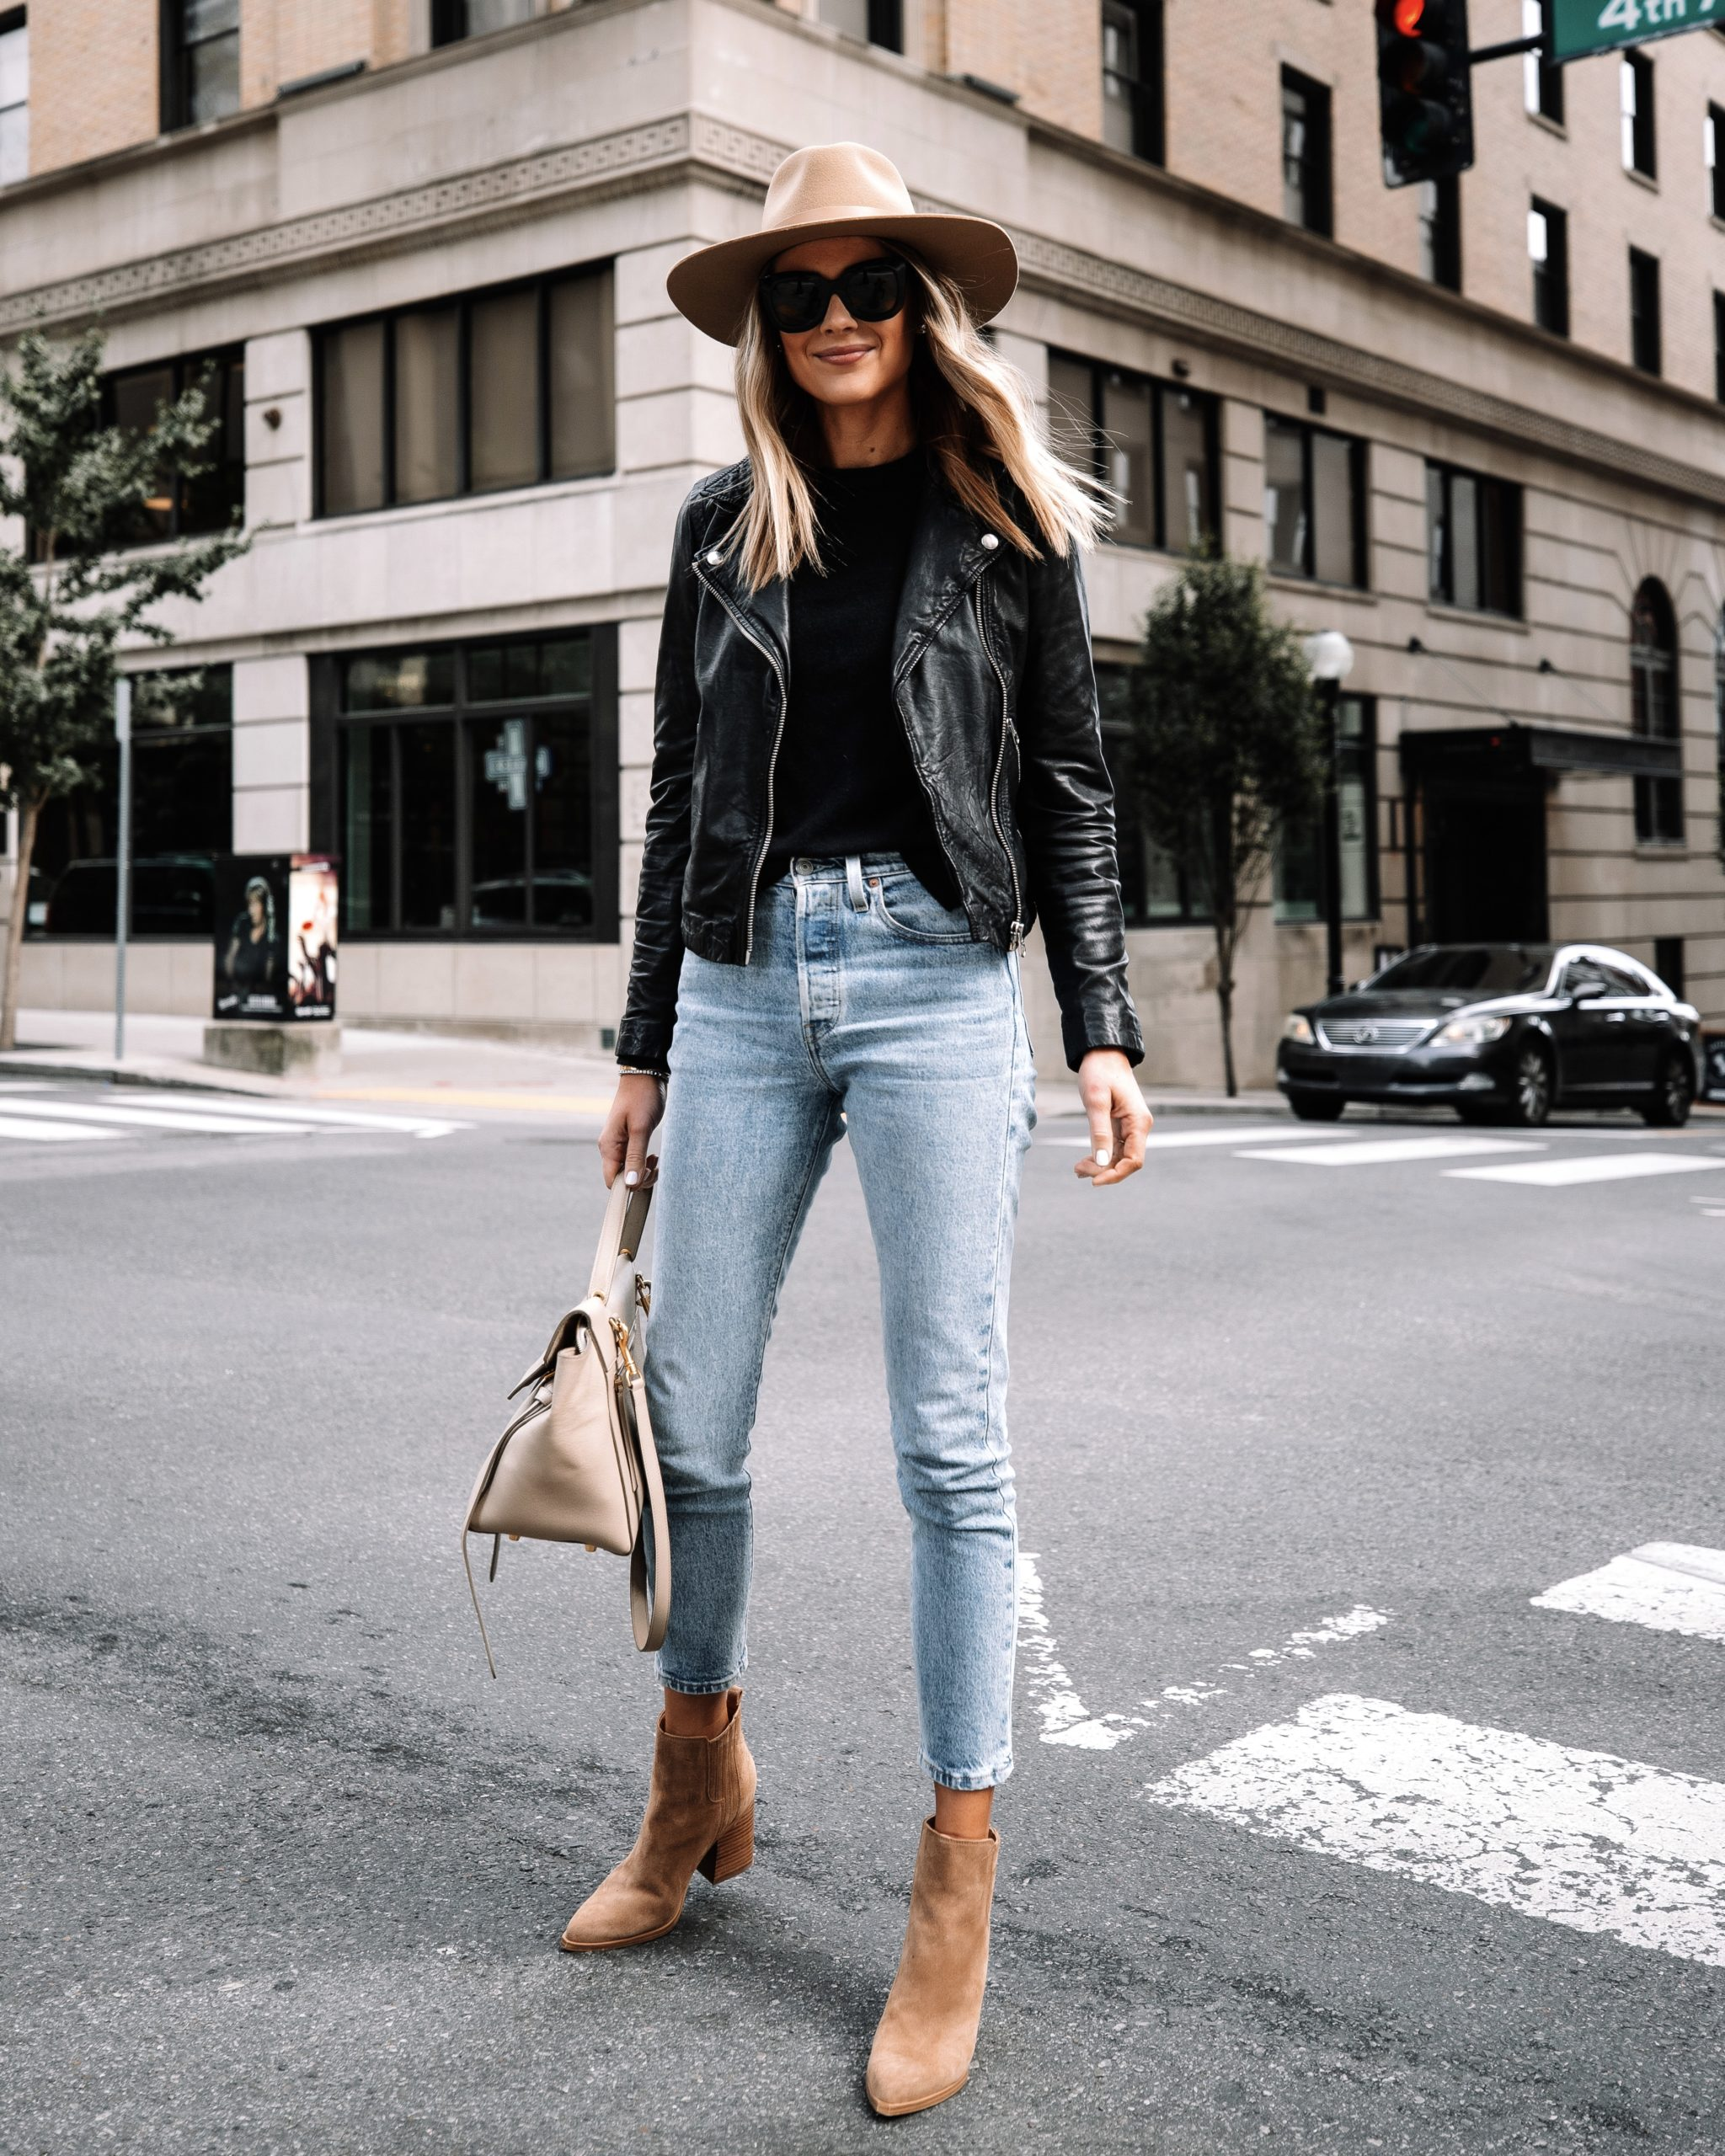 Fashion Jackson Wearing Madewell Black Leather Jacket Black Sweater Levis Jeans Tan Suede Booties Rag and Bone Tan Fall Hat Street Style 1